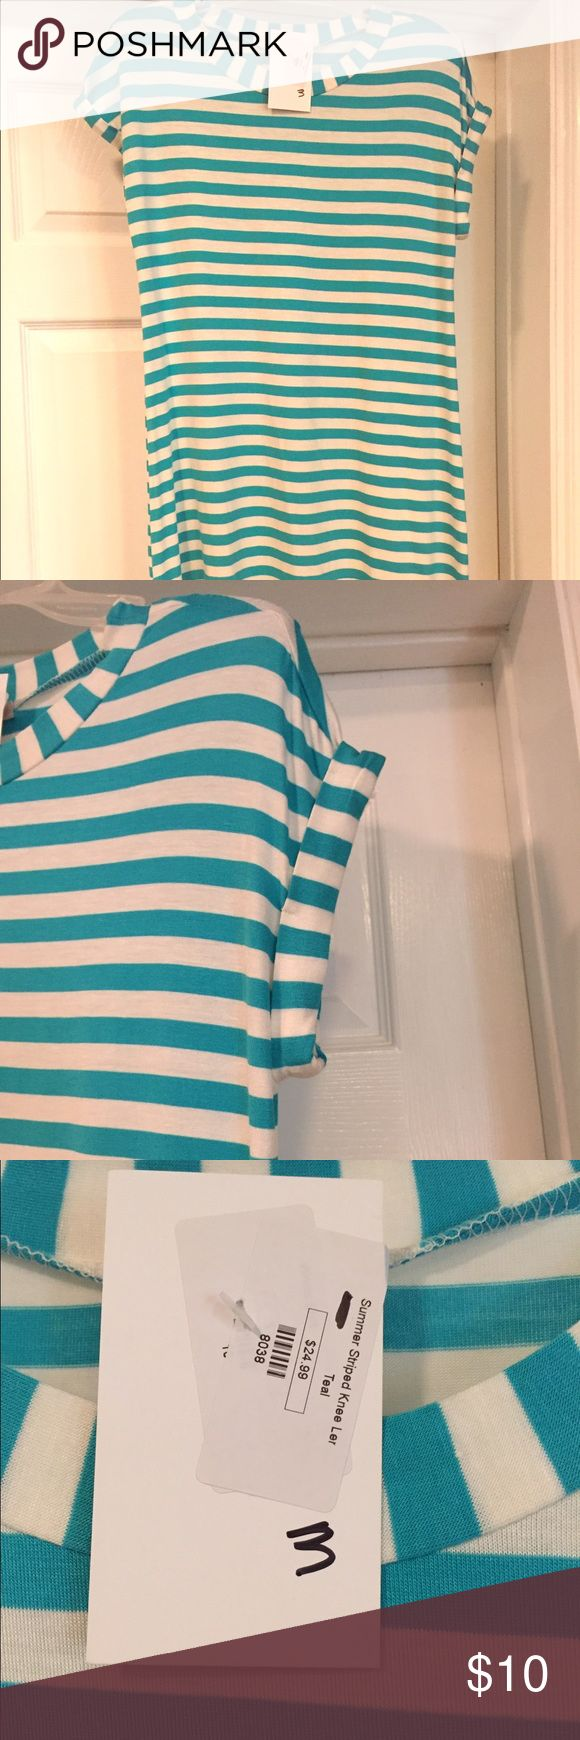 Striped tunic dress Aqua and white striped tunic dress with folded sleeves. Super soft and bouncy. NWT Dresses Mini